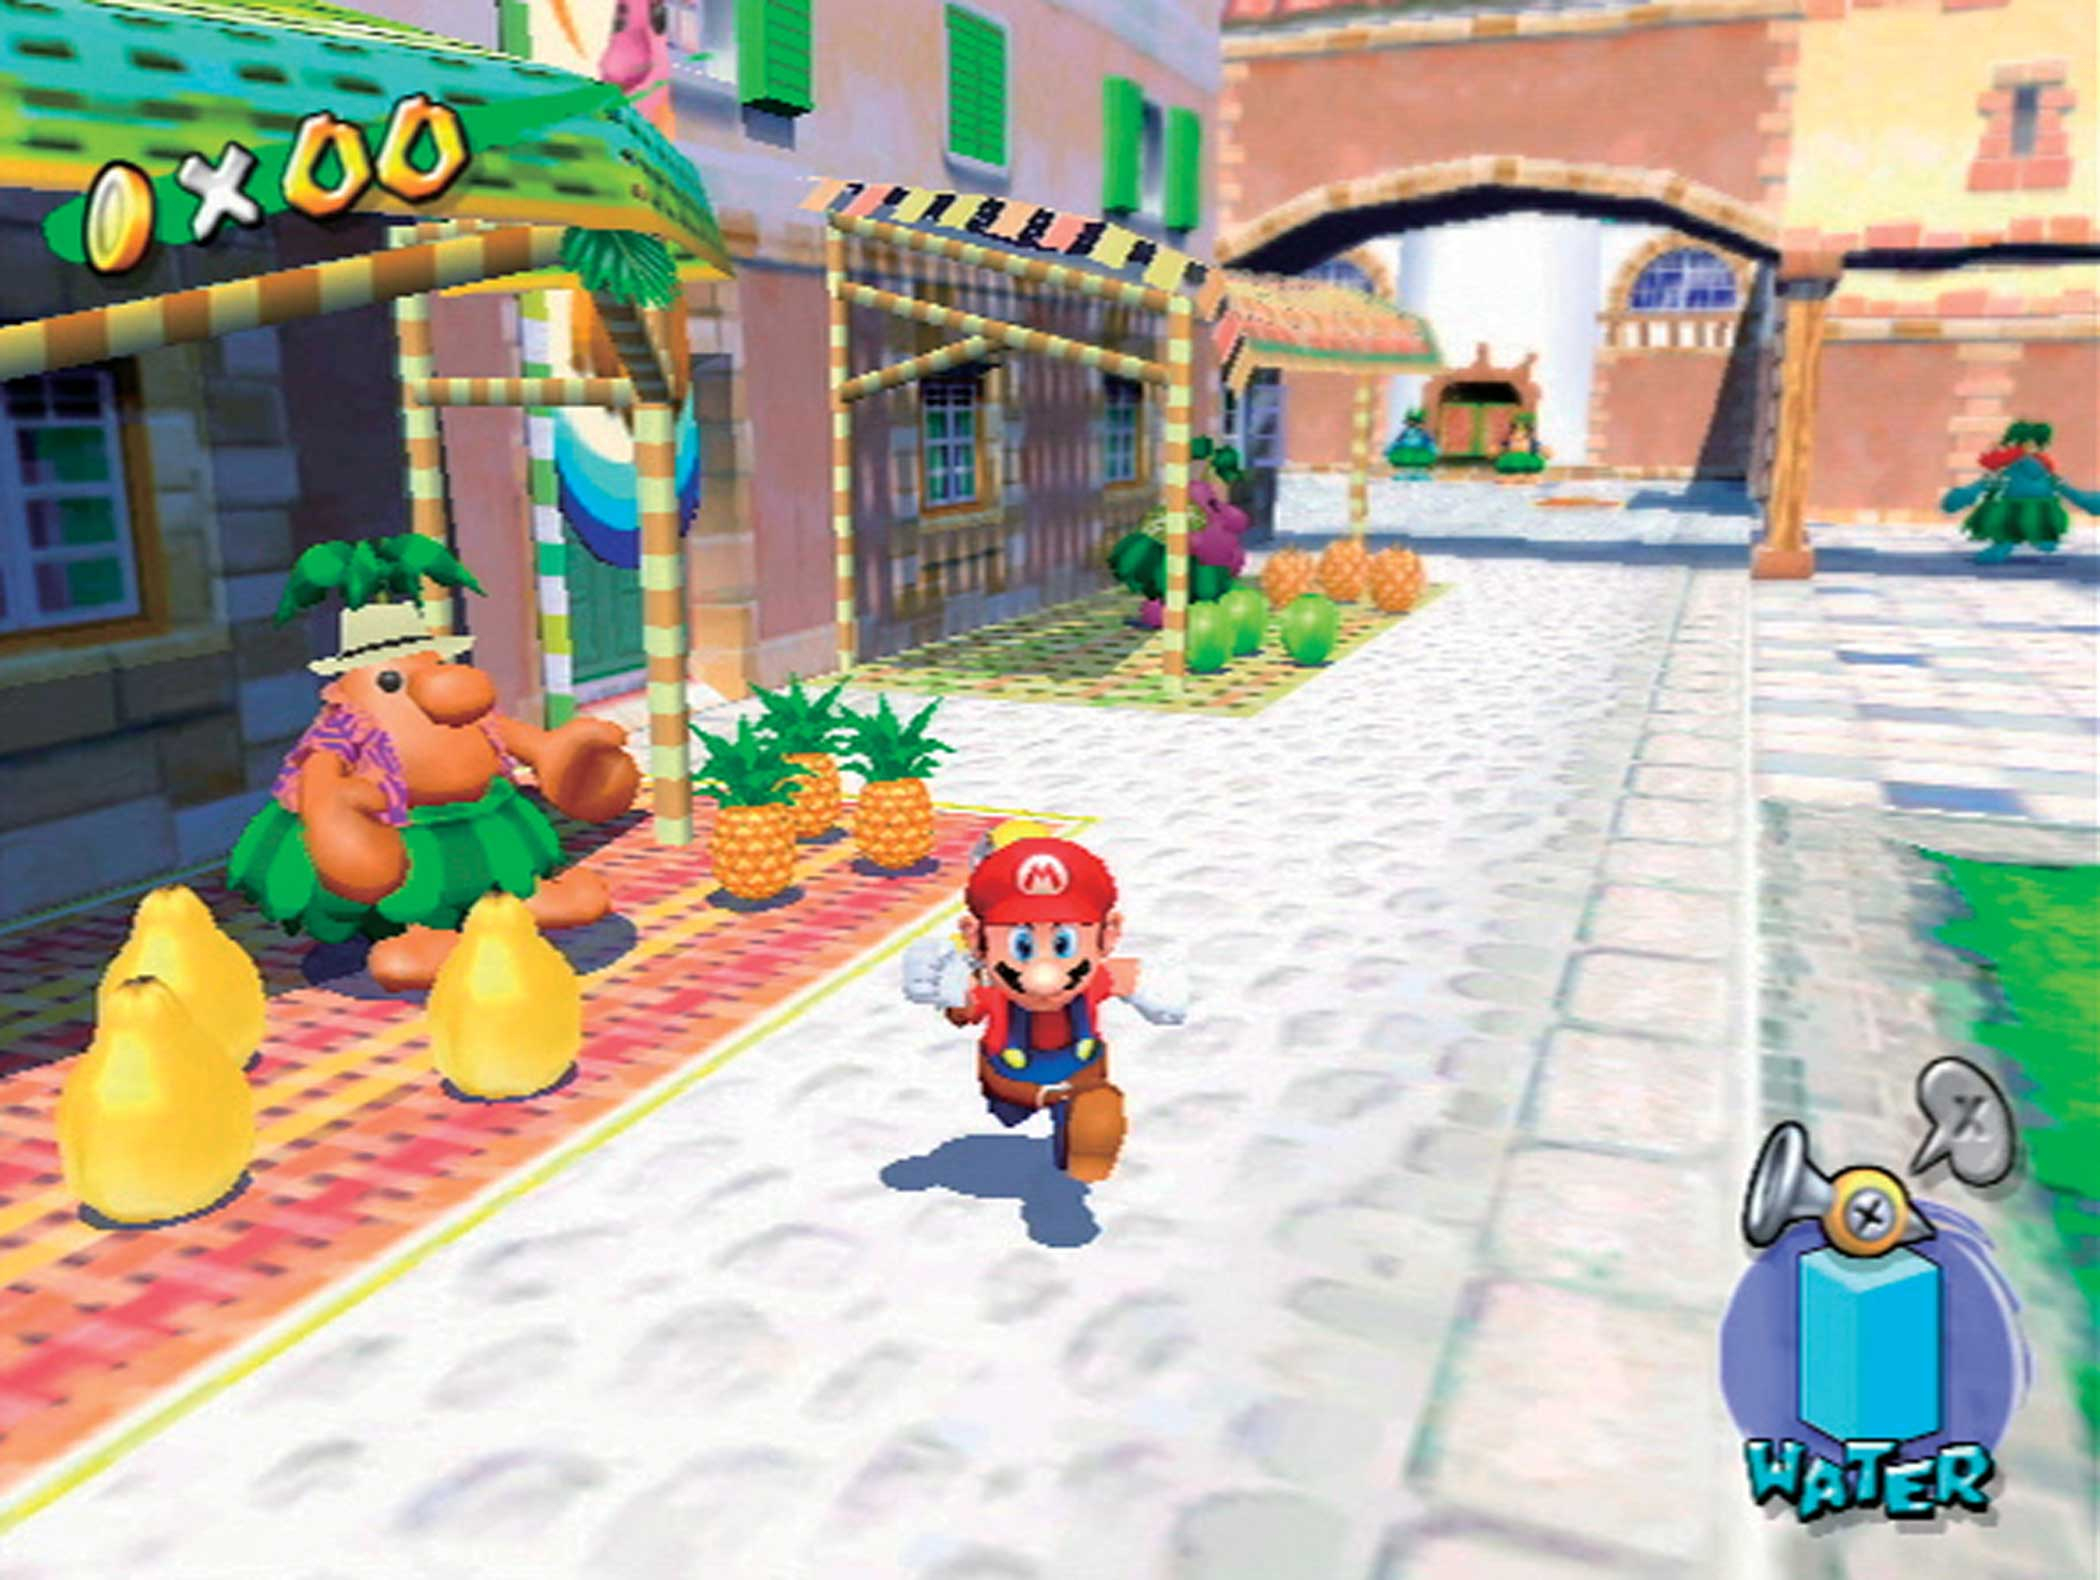 2002: Super Mario Sunshine                                                              Nintendo's pollution-sluicing followup to Super Mario 64 sold less well than it might have (just over 5 million copies, the worst-selling Super Mario game), in large part because the system it debuted on--Nintendo's GameCube--couldn't compete with Sony's market-dominant PlayStation 2.